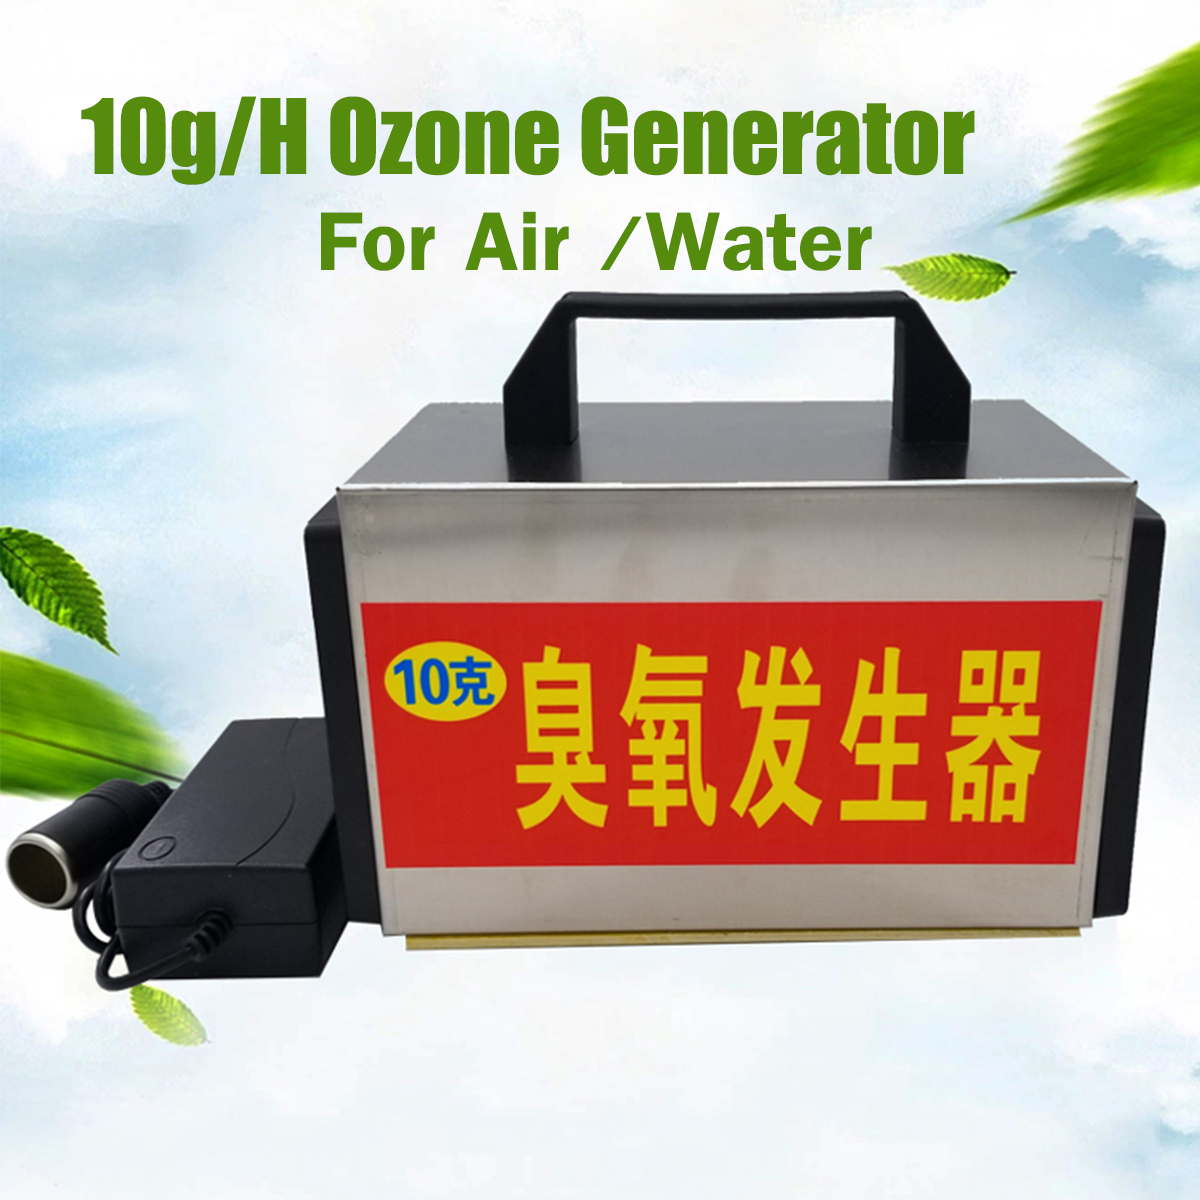 Multifunction 10G 220V/110V Water Ozone O3 Generator Ozonator Machine Air Purifier Filter Sterilizer for Water Air continuous ink system for hp 711 for hp t120 t520 printer ciss with auto reset chip for hp ciss ink tank supply ciss system